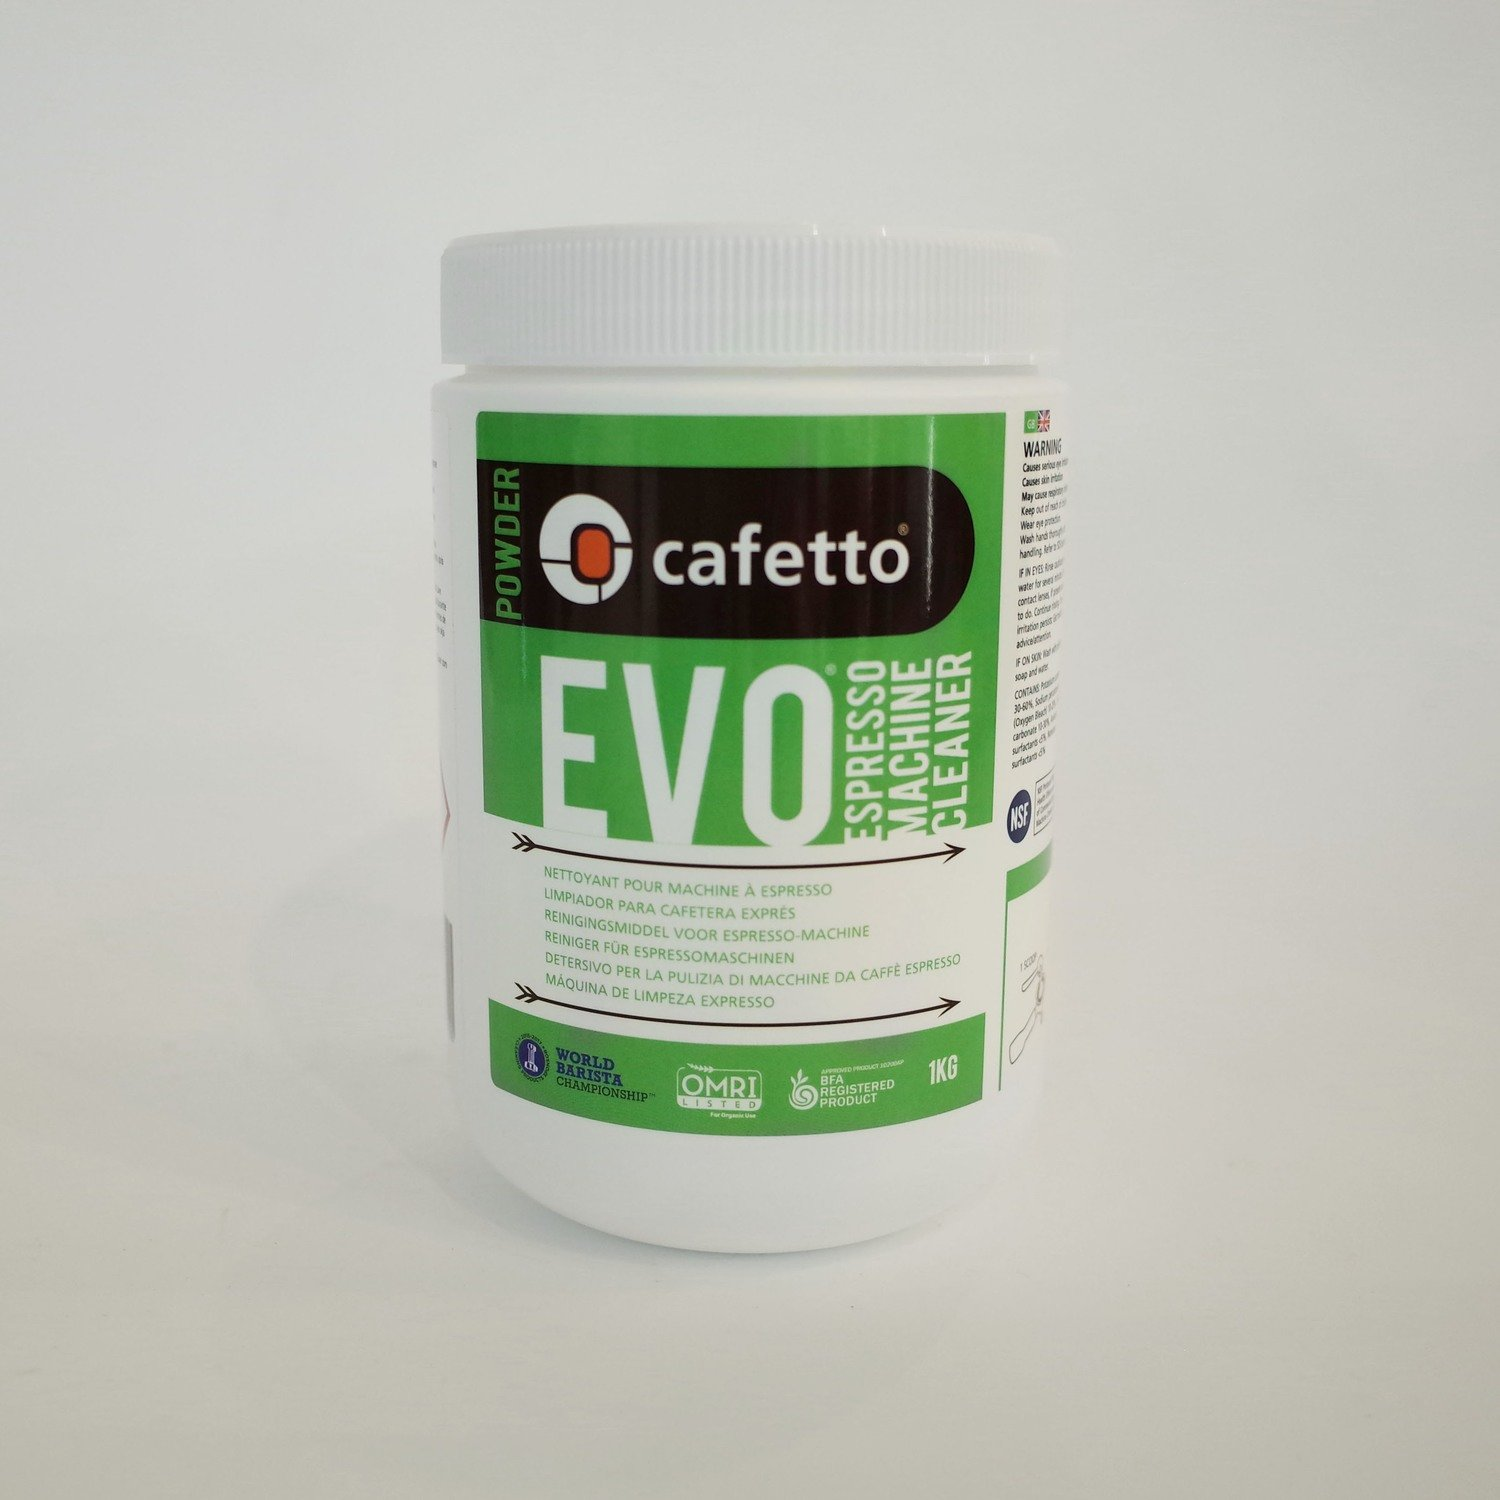 Cafetto Organic EVO Espresso Machine Cleaner 500g/1kg